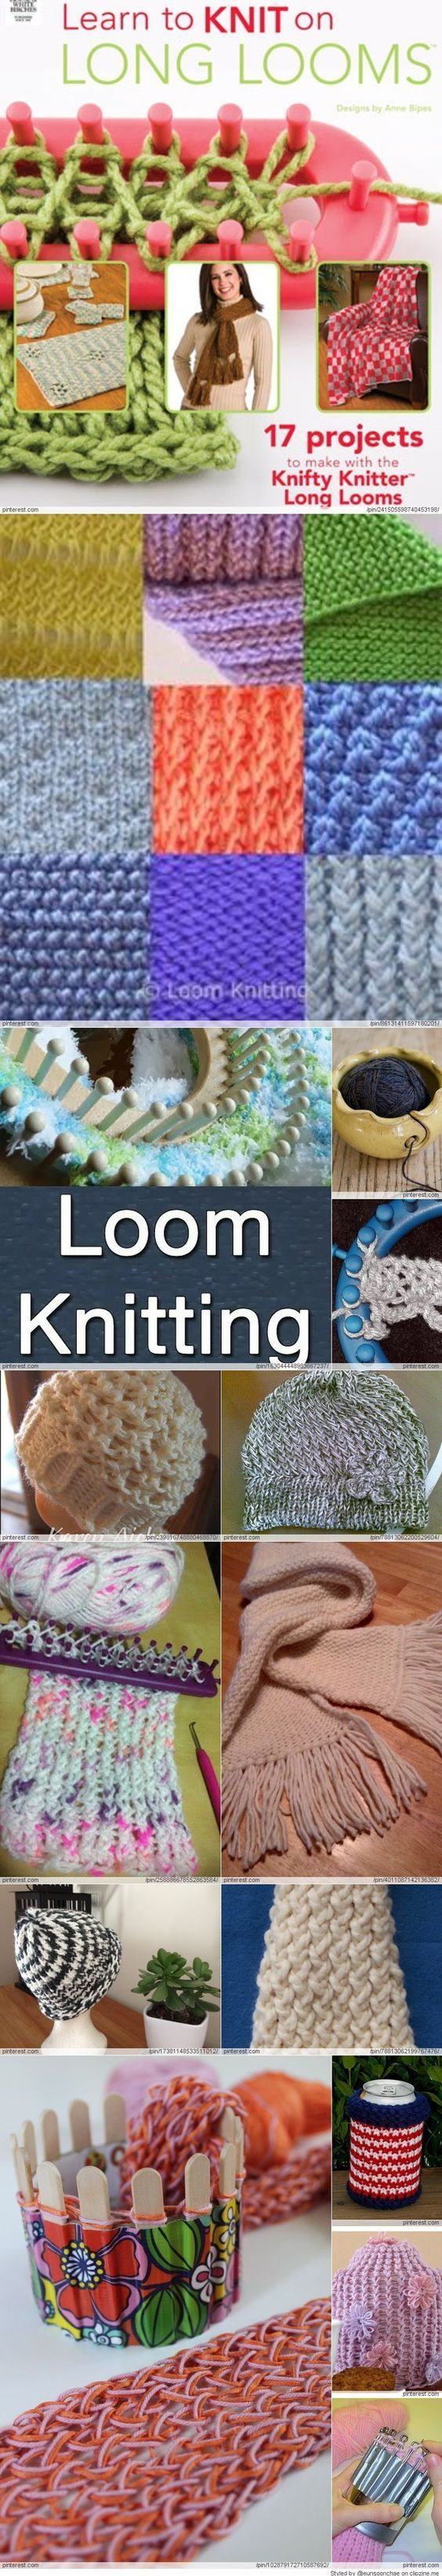 Learn New Stitches on Circle Looms by Anne Bipes ...